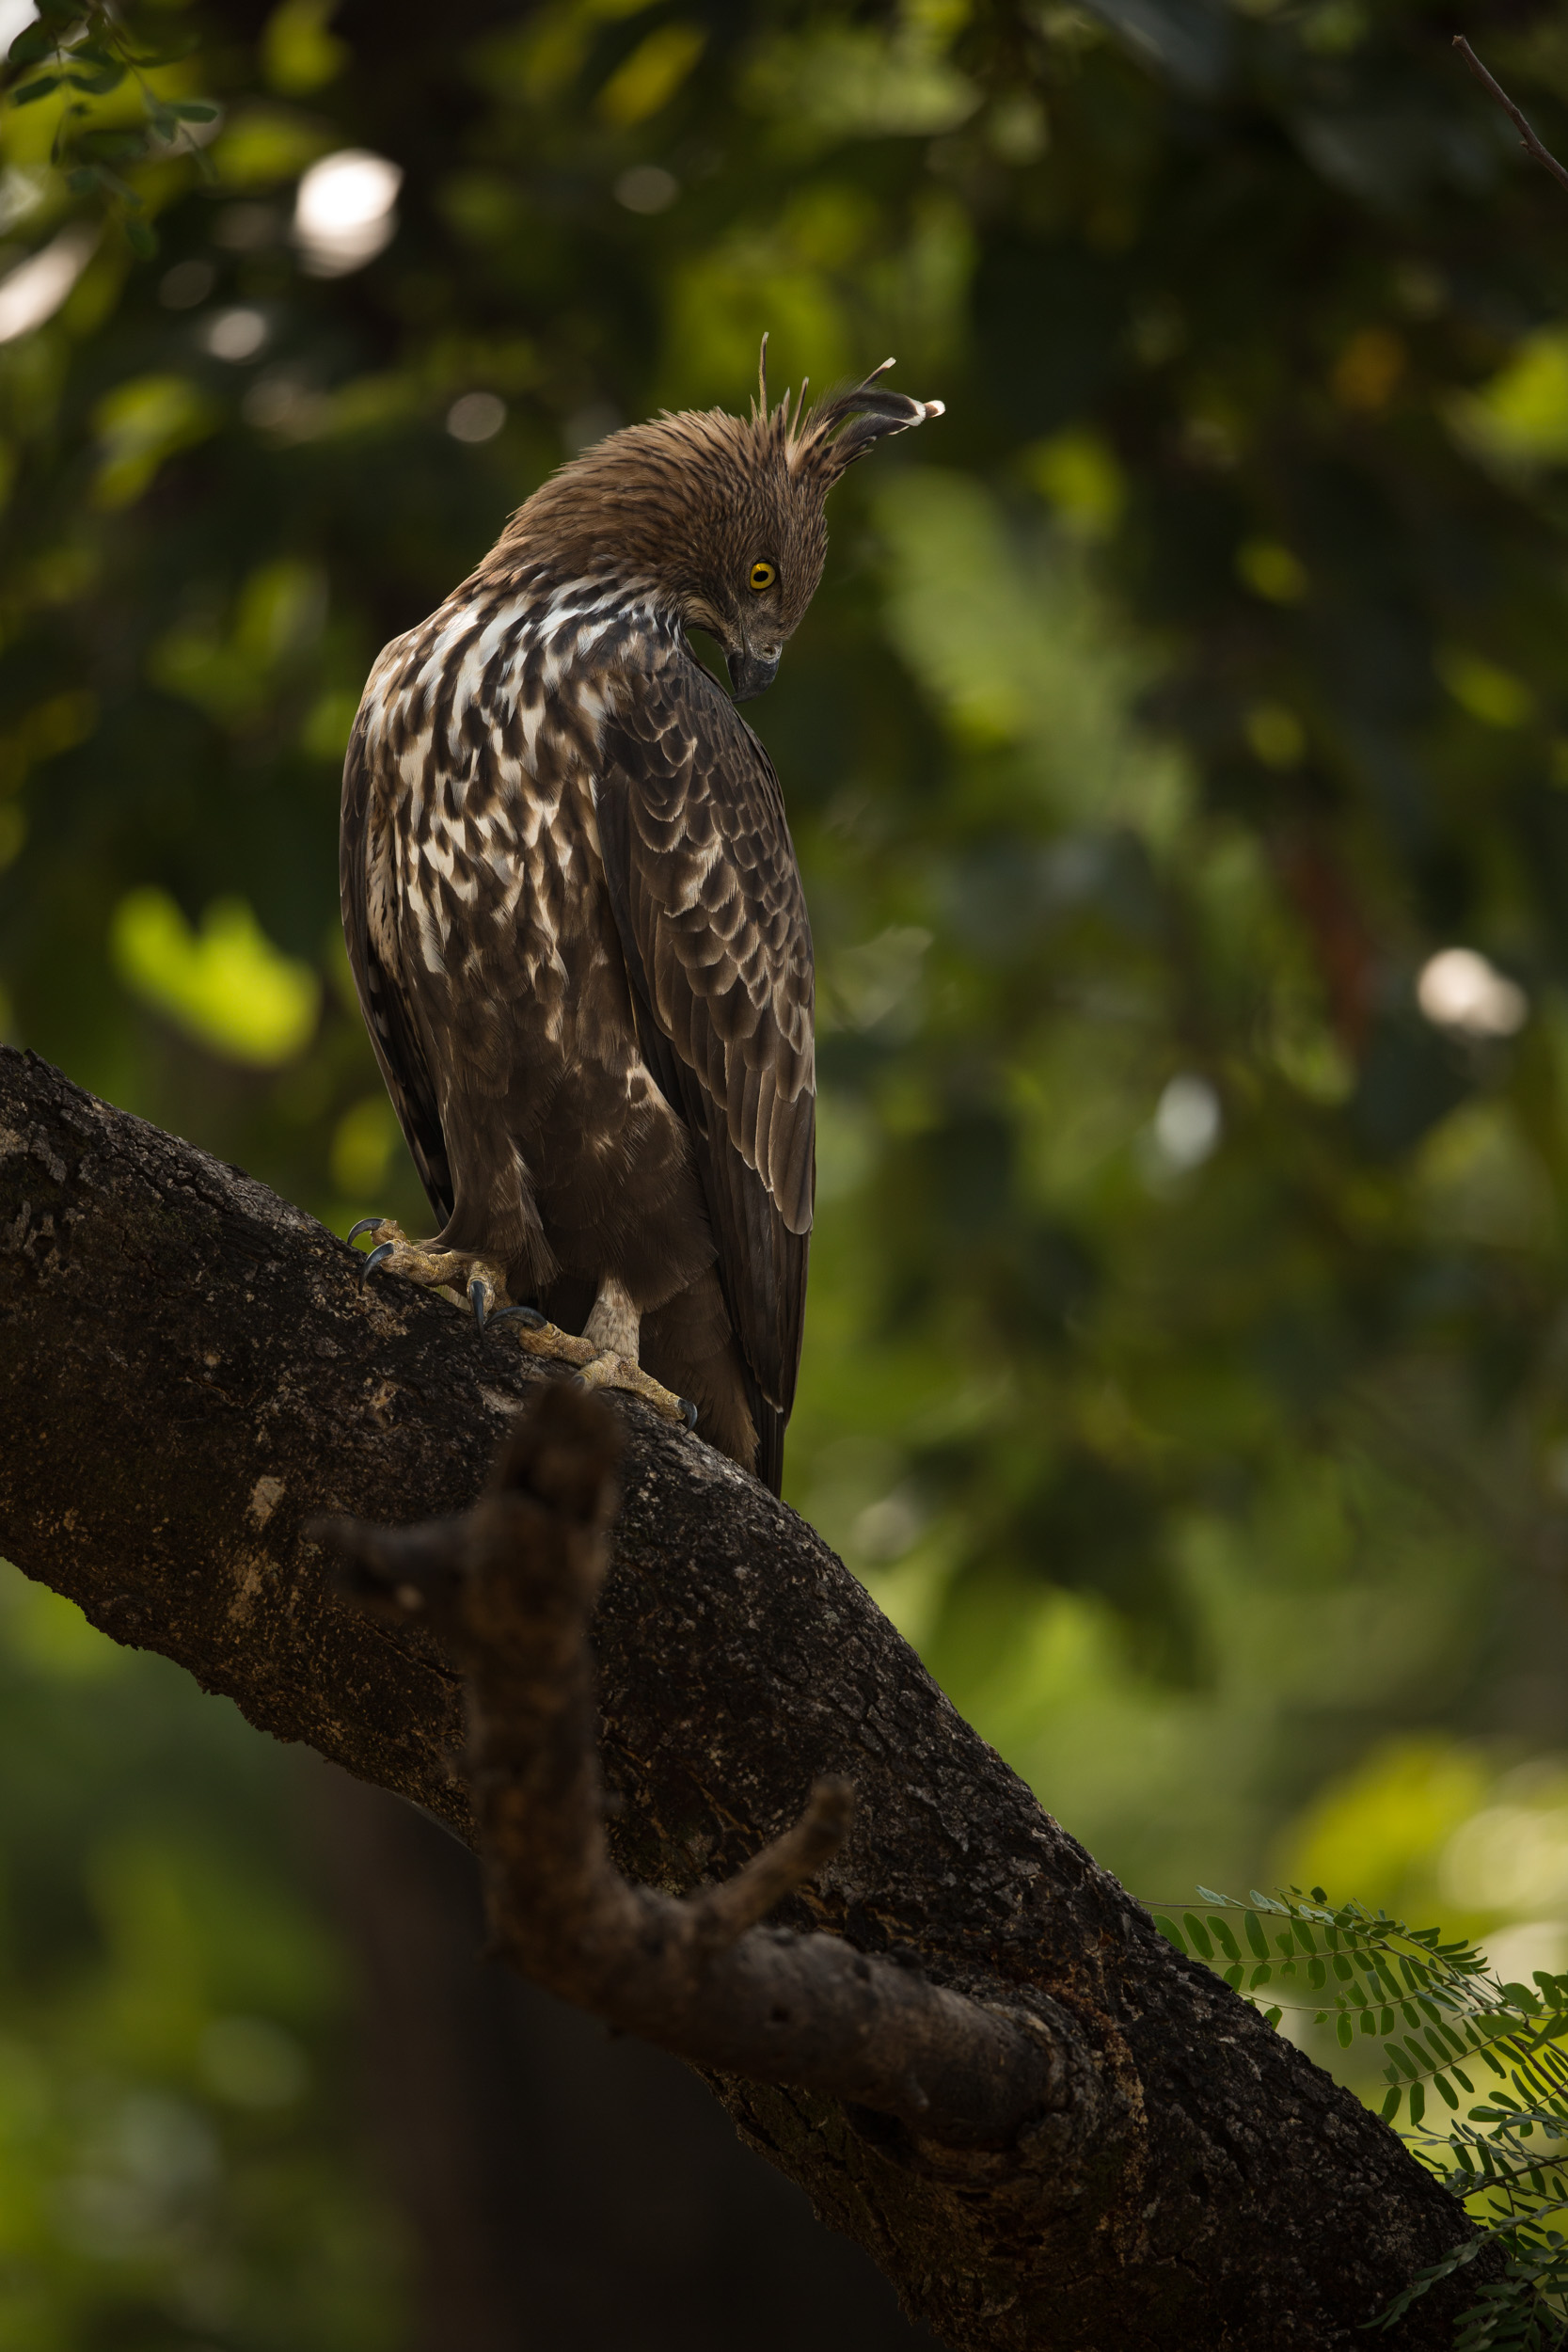 A Changeable hawk-eagle (Nisaetus cirrhatus) sits waiting, and watching for possible prey. CLICK IMAGE for full screen.